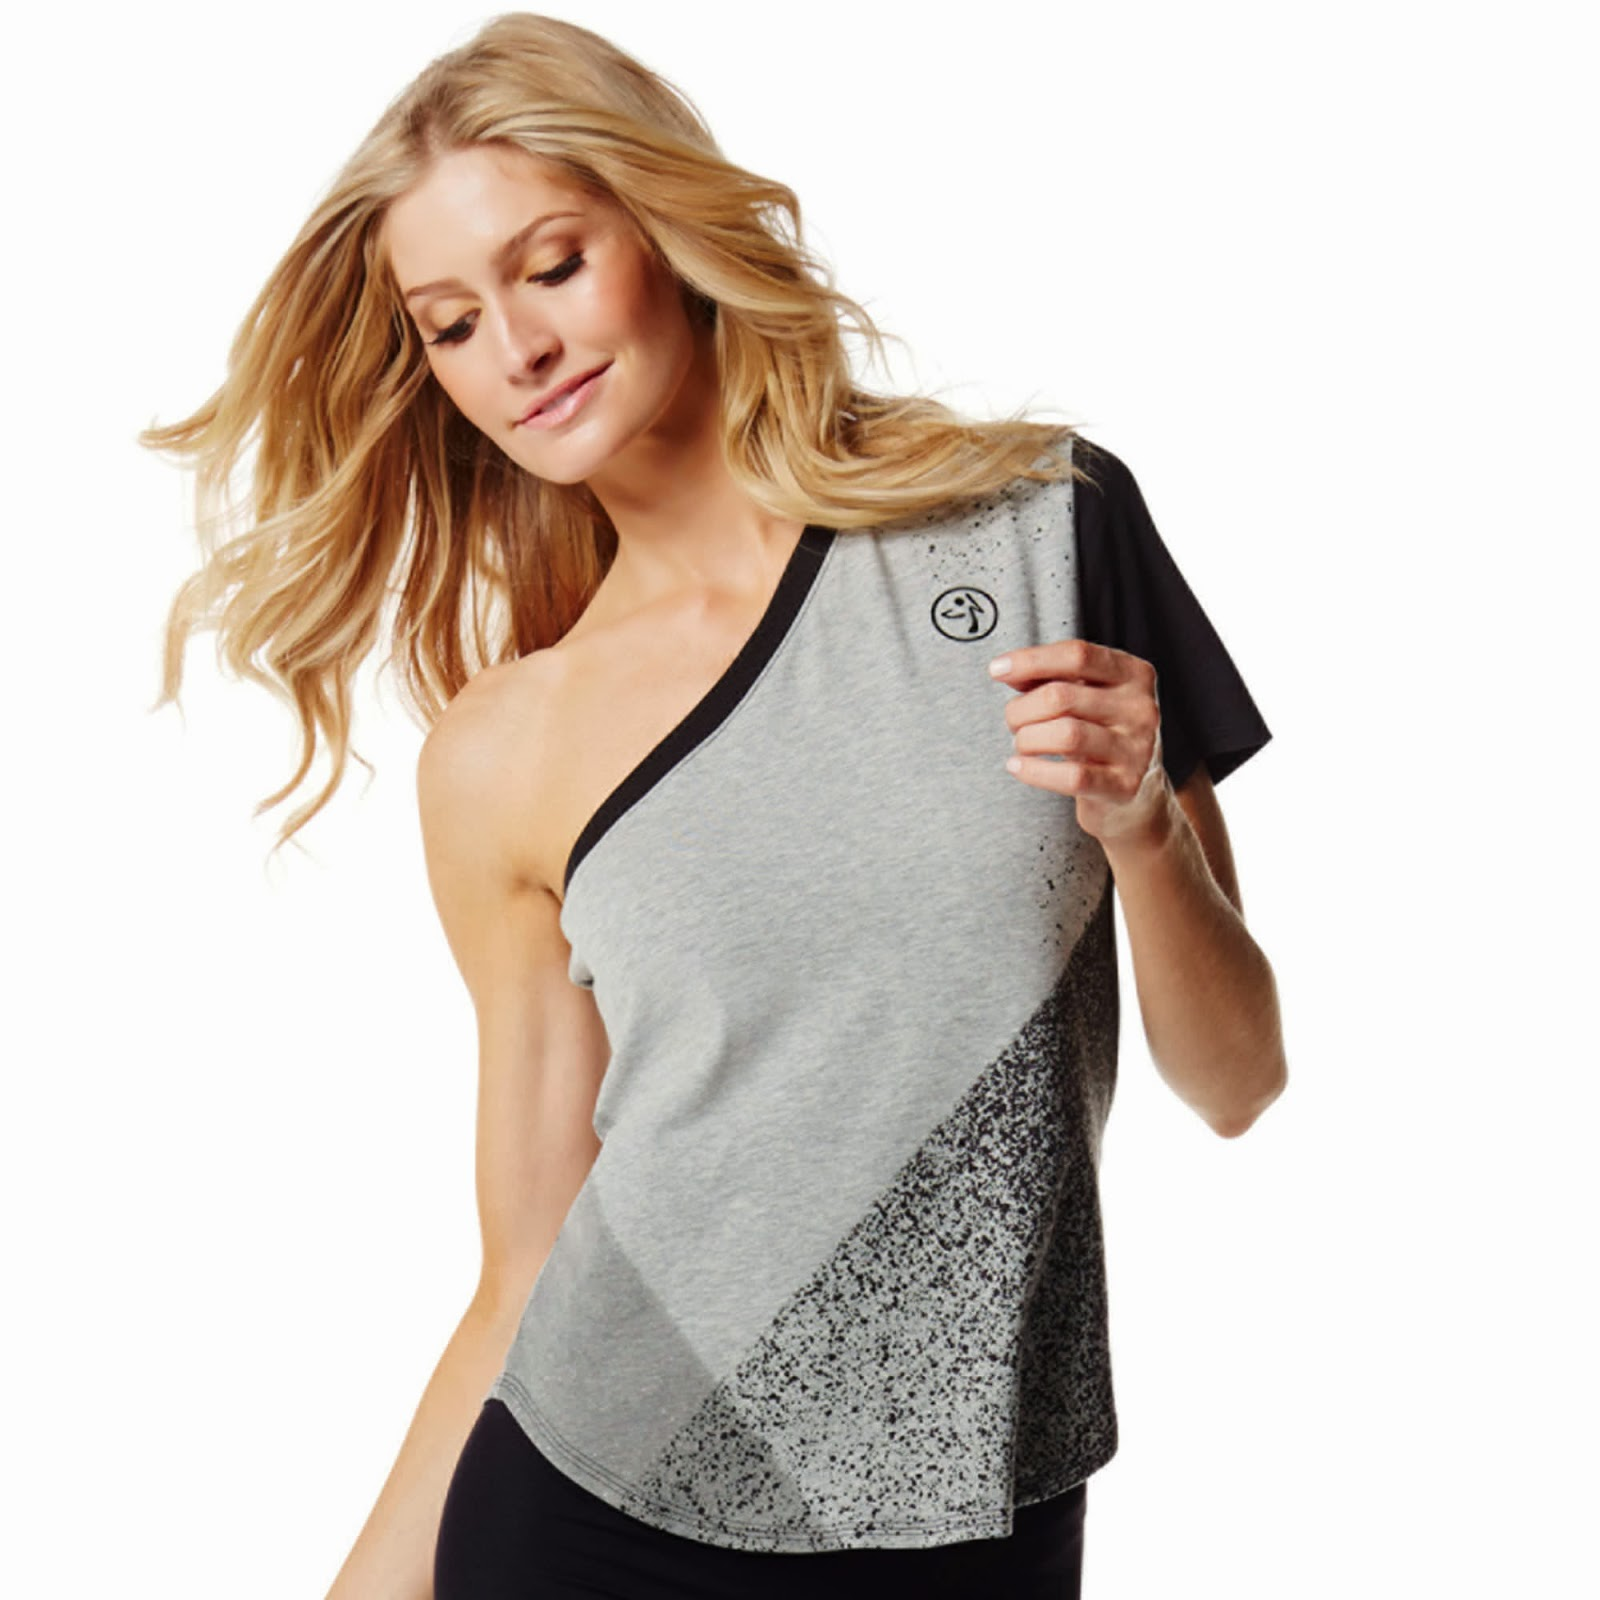 http://www.zumba.com/en-US/store/US/product/asymetrical-short-sleeve-tee-z1t00593?color=Off+The+Chain+White